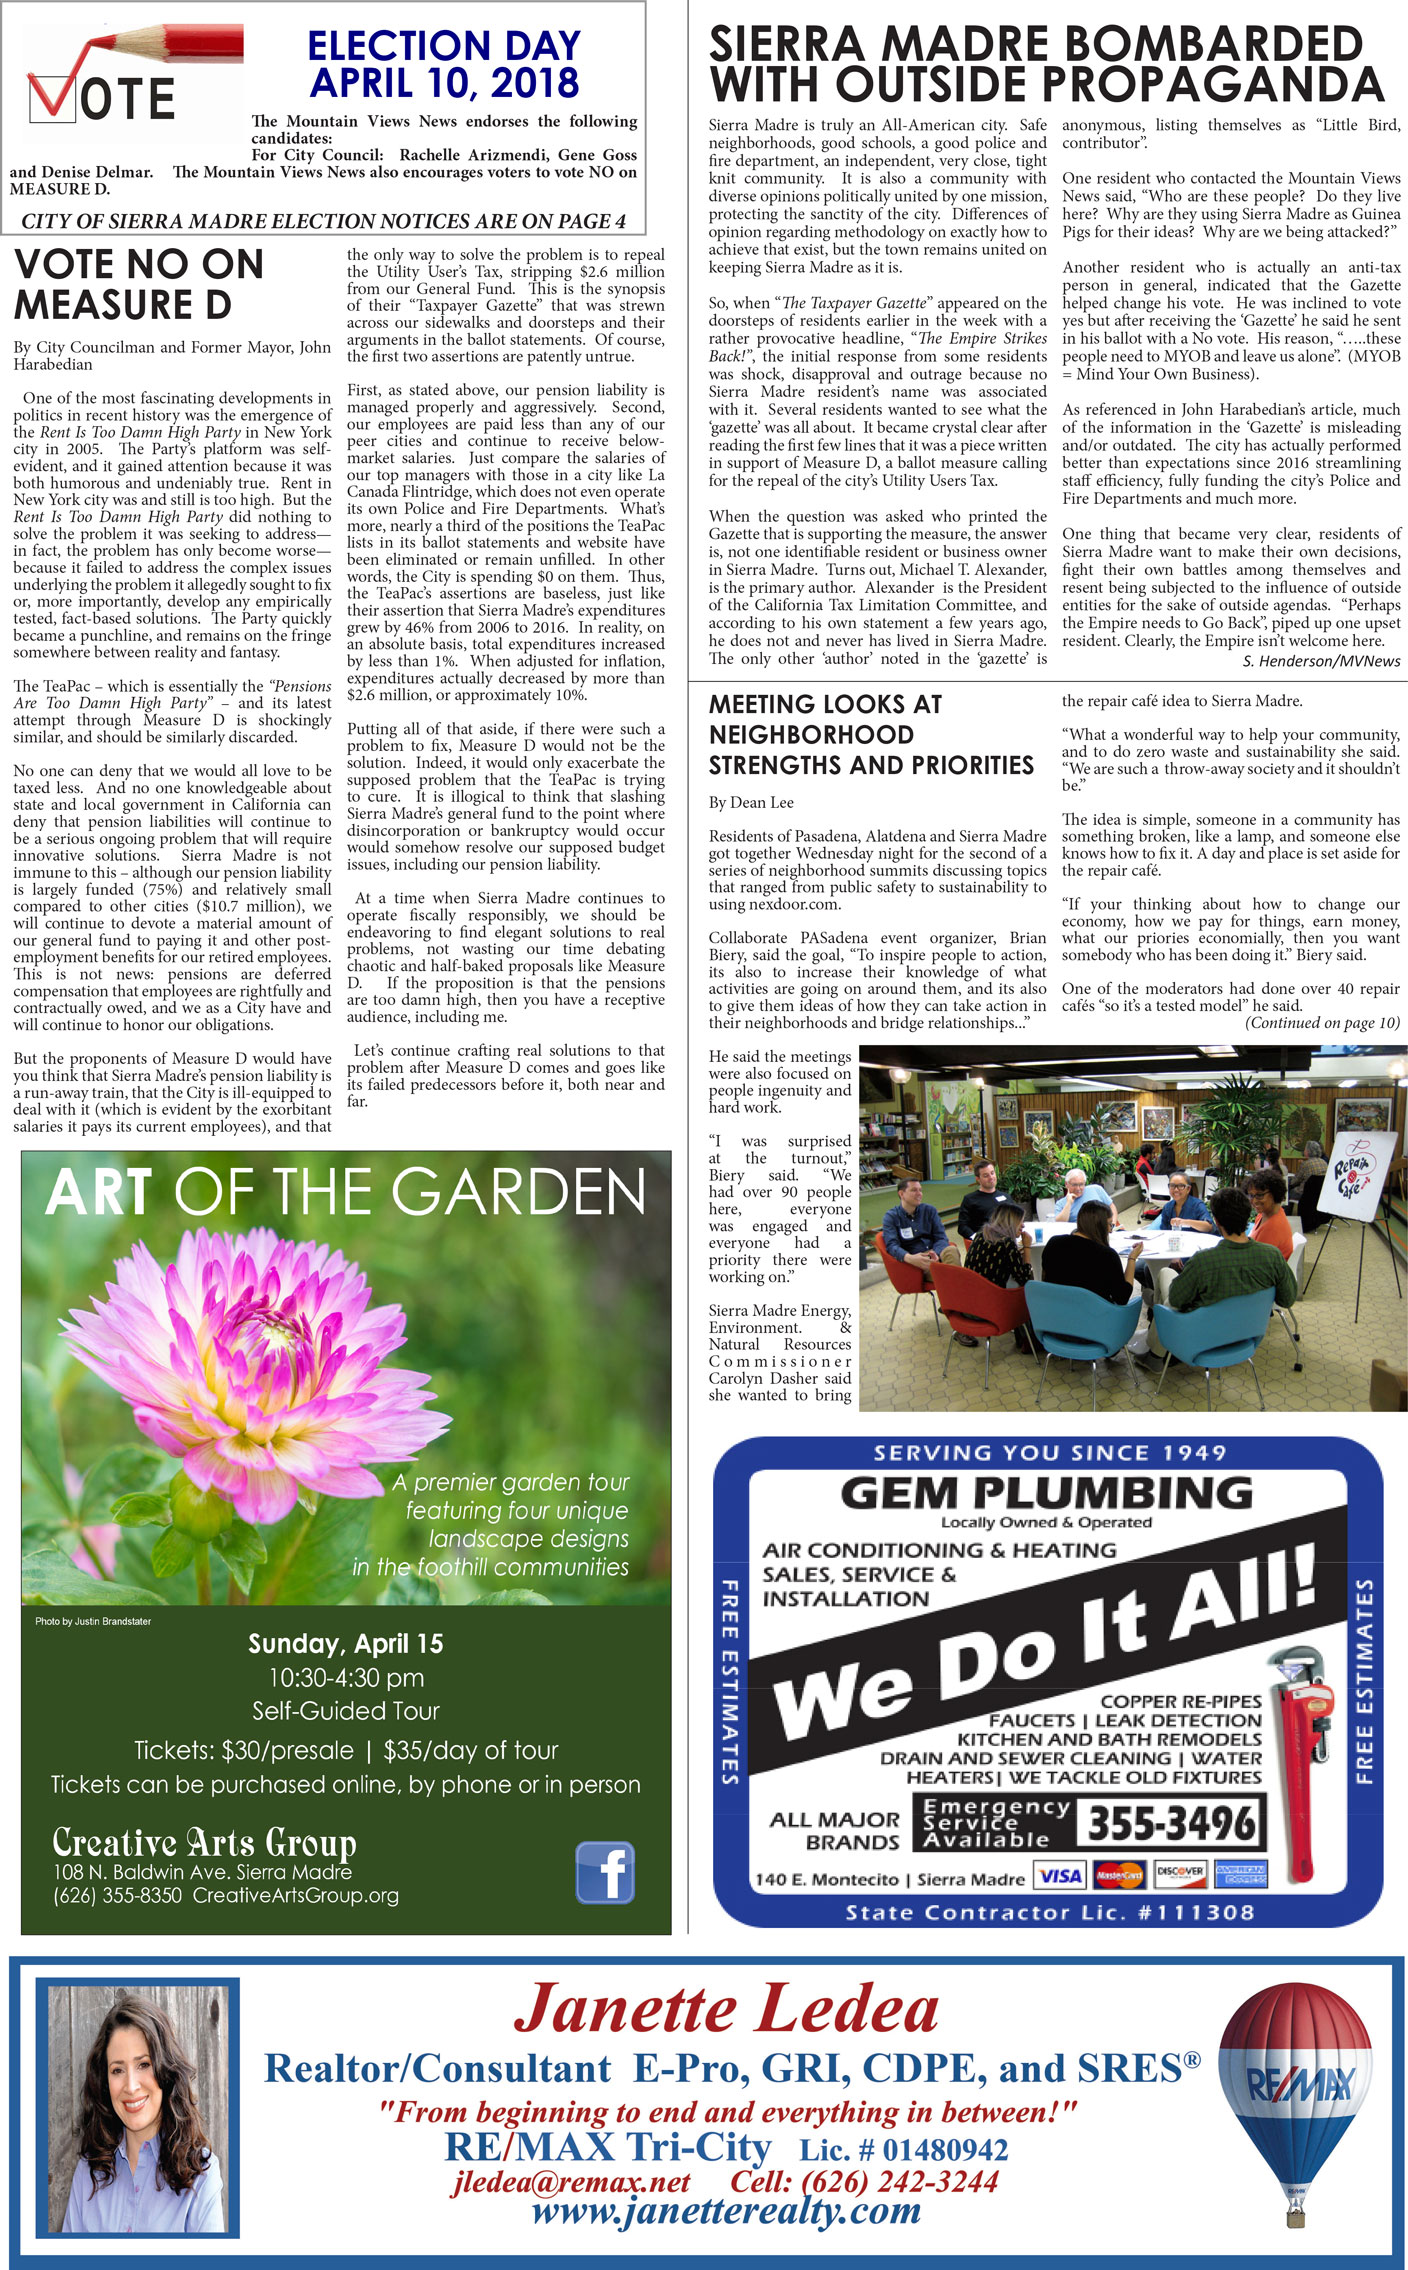 pA:1, v12.14 — Home Page — Mountain Views News, Sierra Madre edition